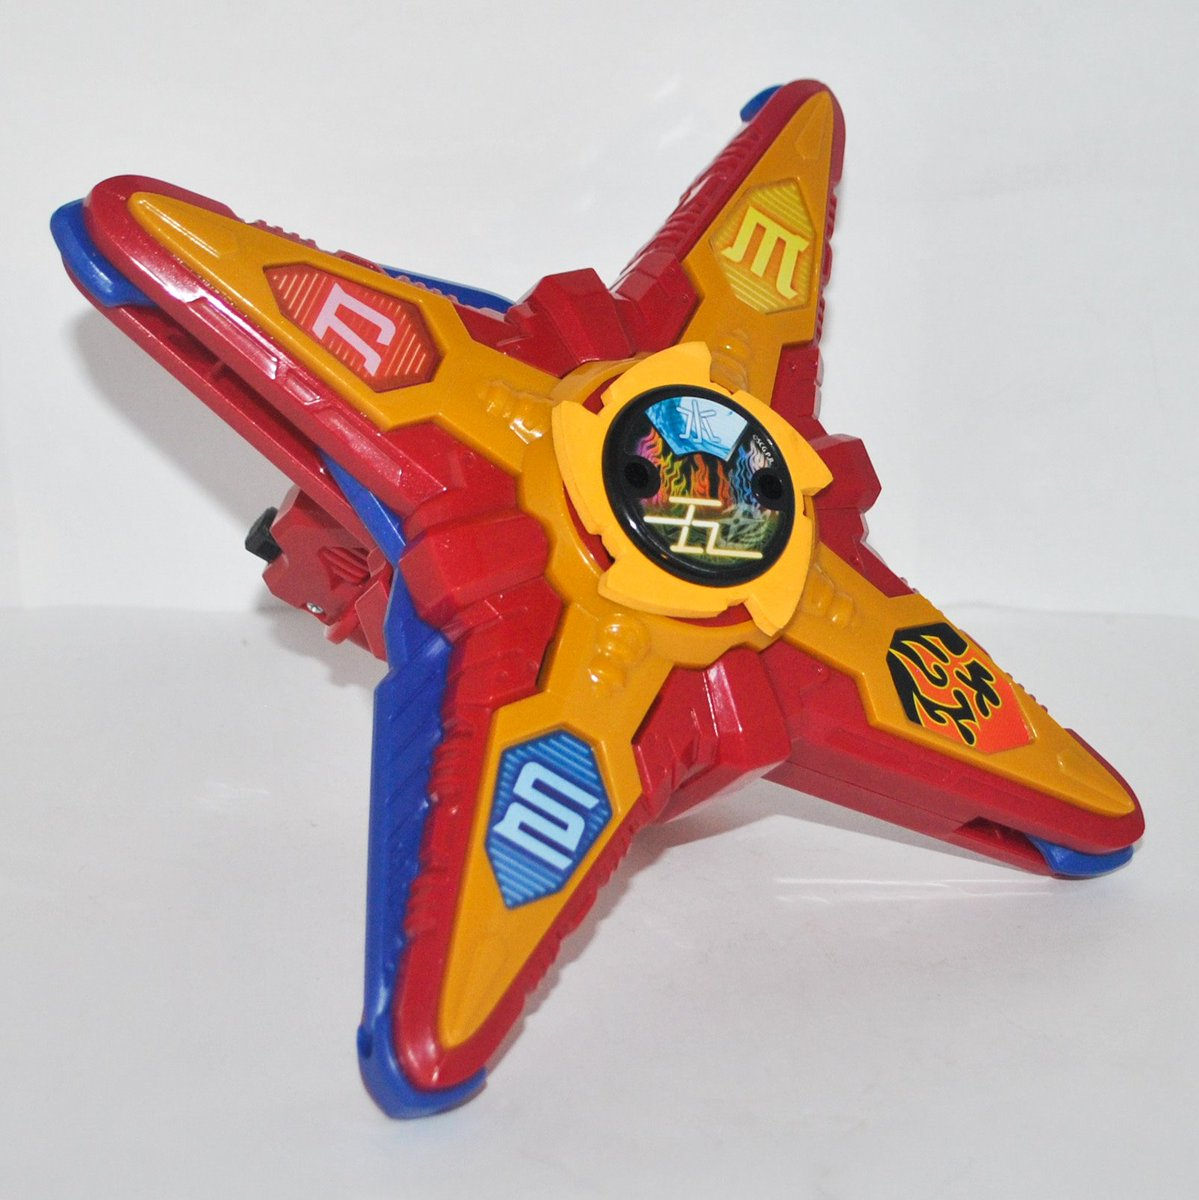 """C.T. Toys & Collectables a Twitter: """"Check out this Saban's POWER RANGERS  Ninja Steel - Deluxe DX Ninja Battle Morpher with the Water Element Ninja  Star by Bandai from 2017 https://t.co/SN8KvcwF3R via @"""